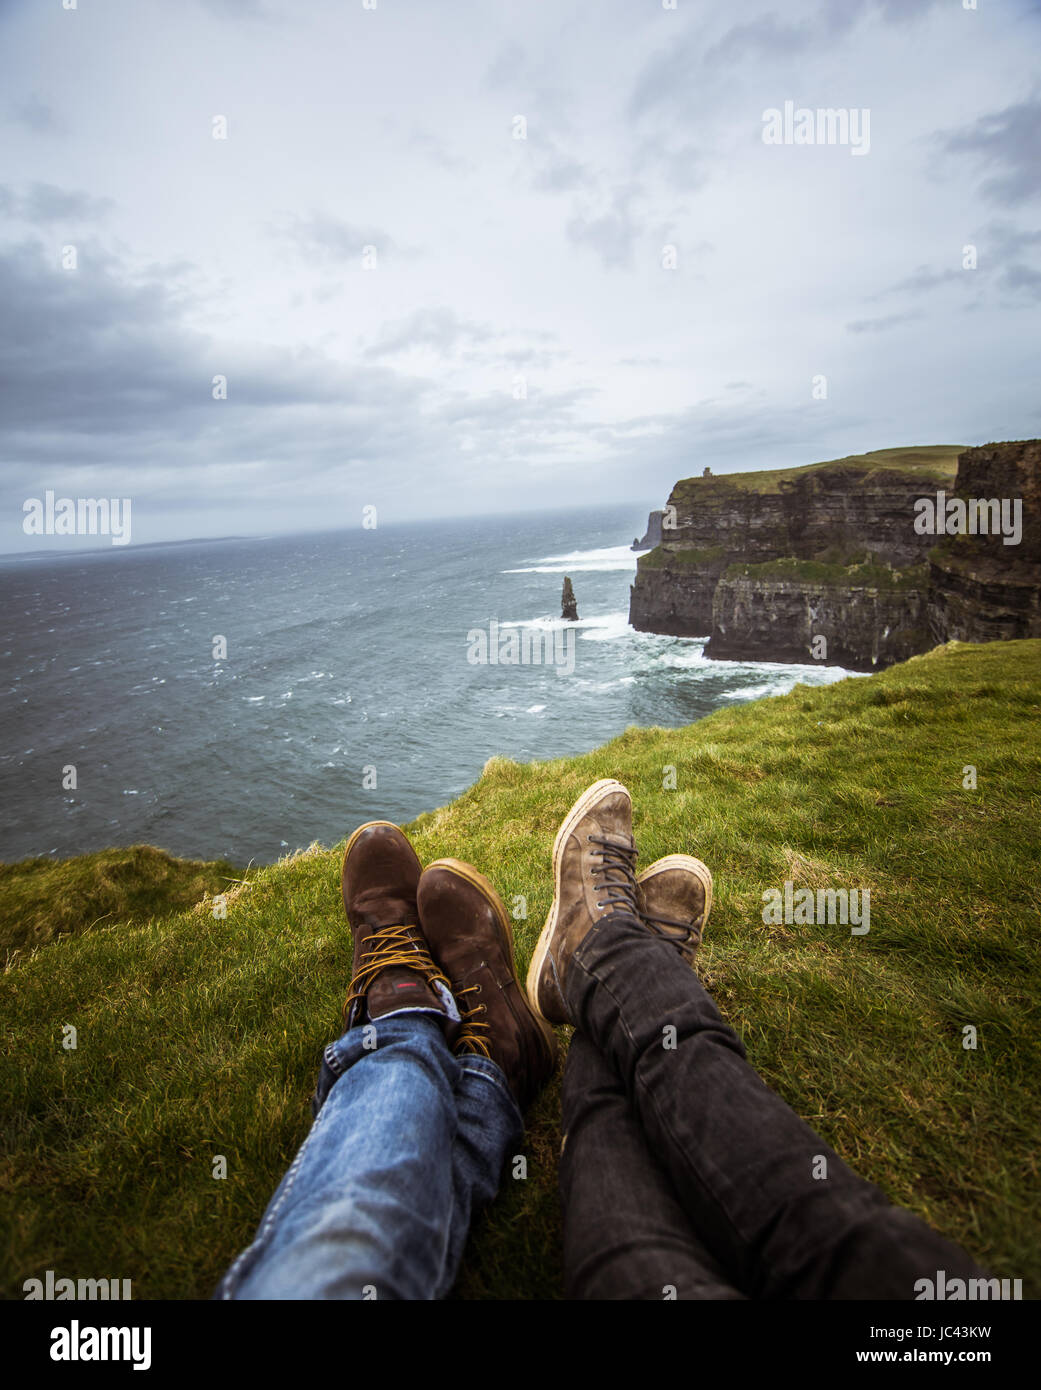 e3a69a17dd768 A beautiful feet selfie at the coast of Atlantic ocean in Ireland. - Stock  Image